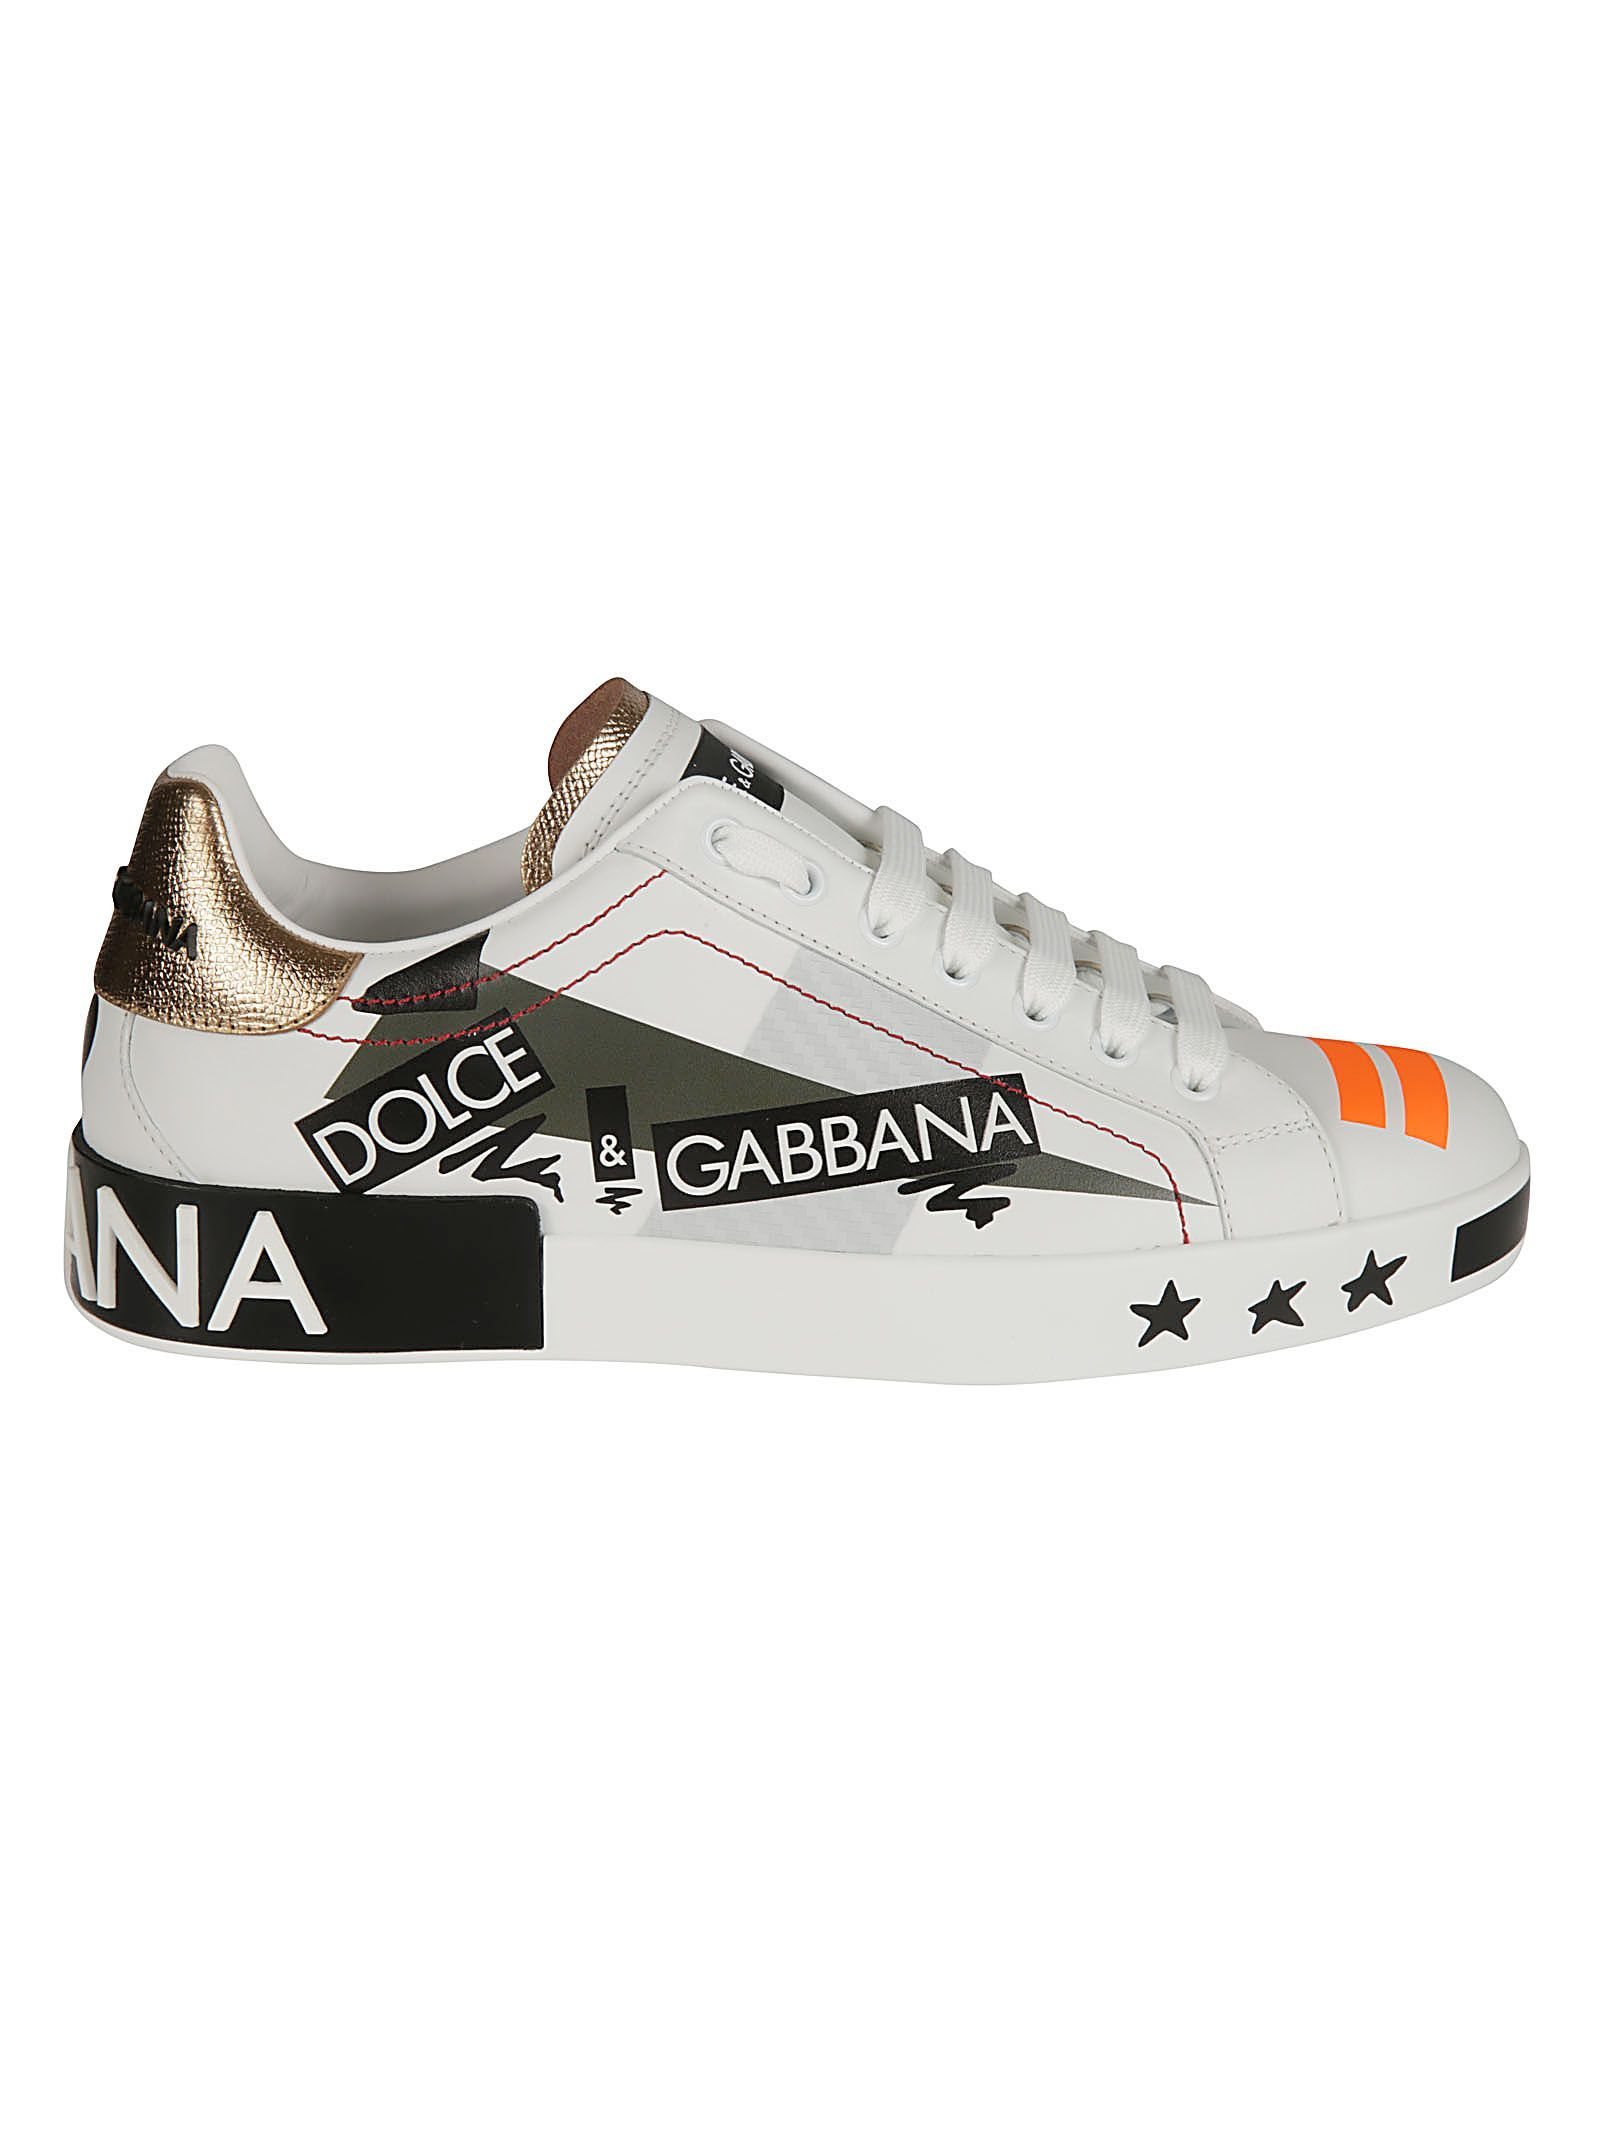 dolce and gabbana sneakers sale